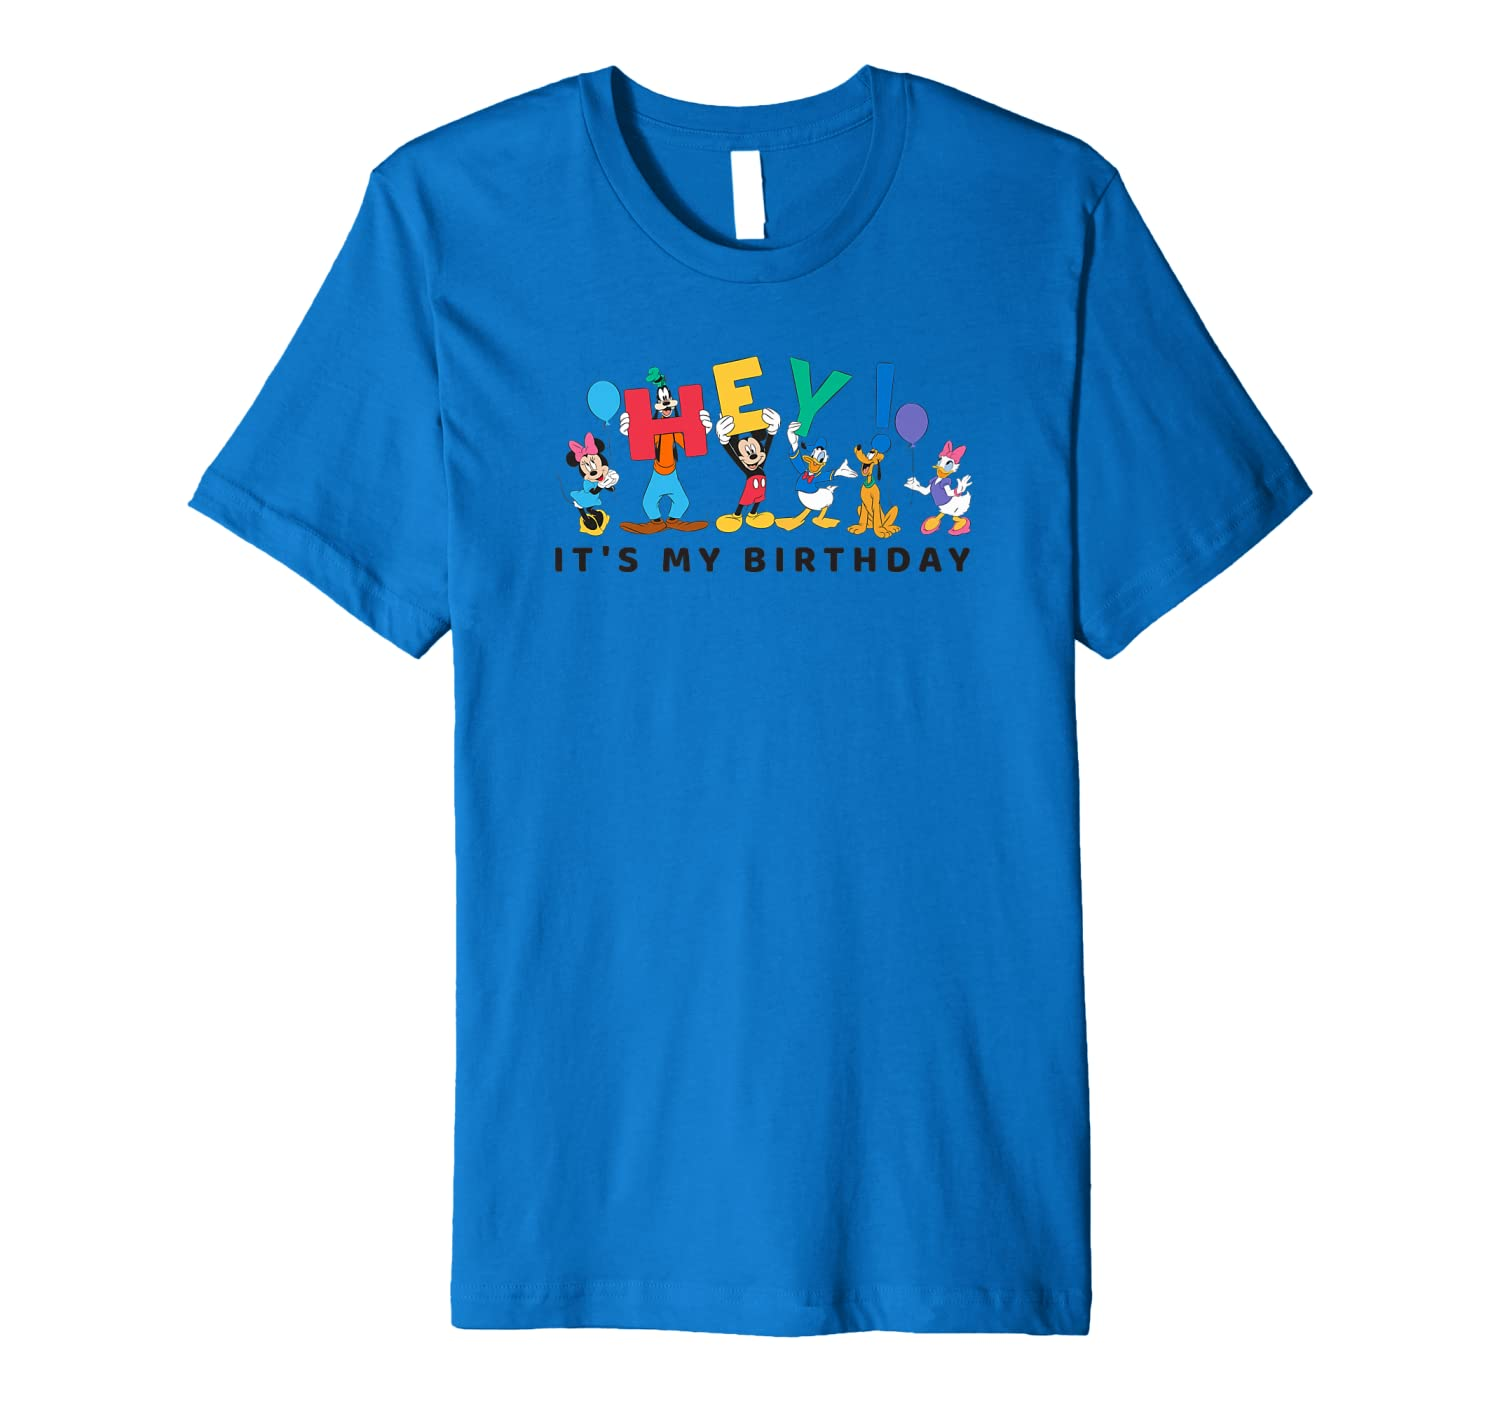 Disney Mickey And Friends Hey Its My Birthday T Shirt Amazoncouk Clothing